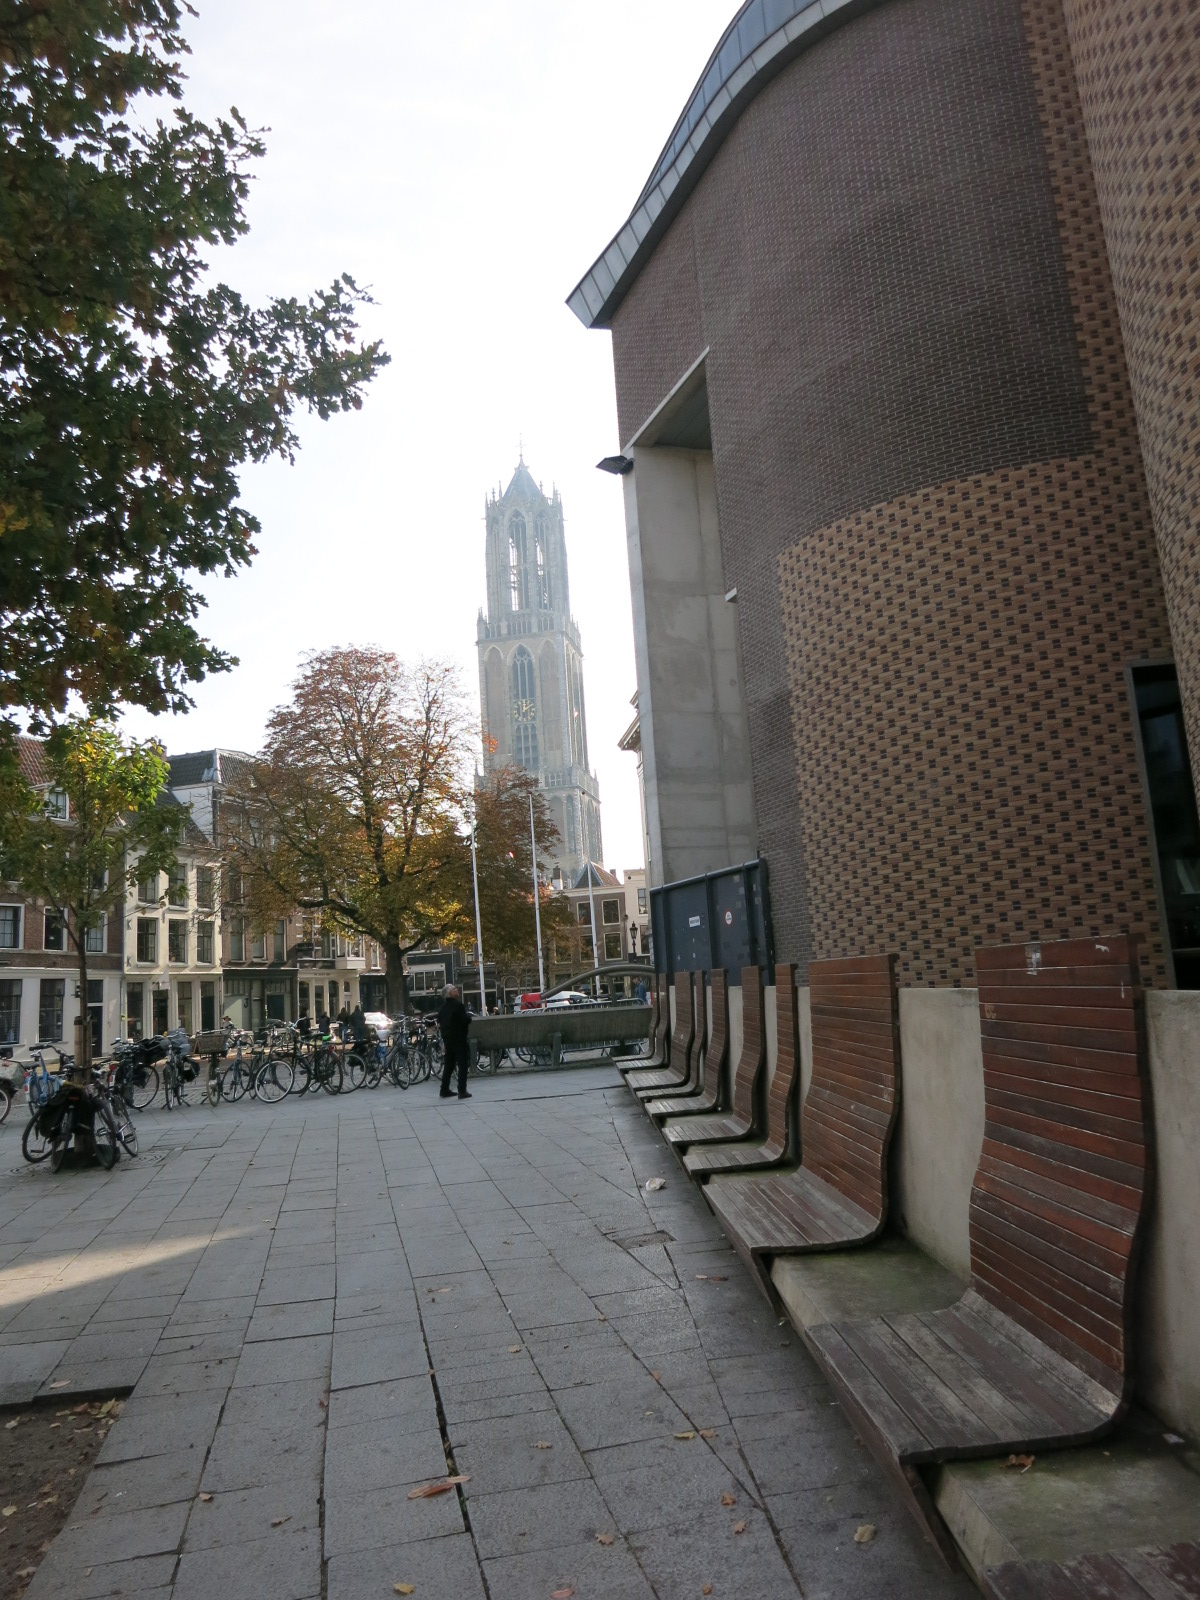 Utrecht's City Hall